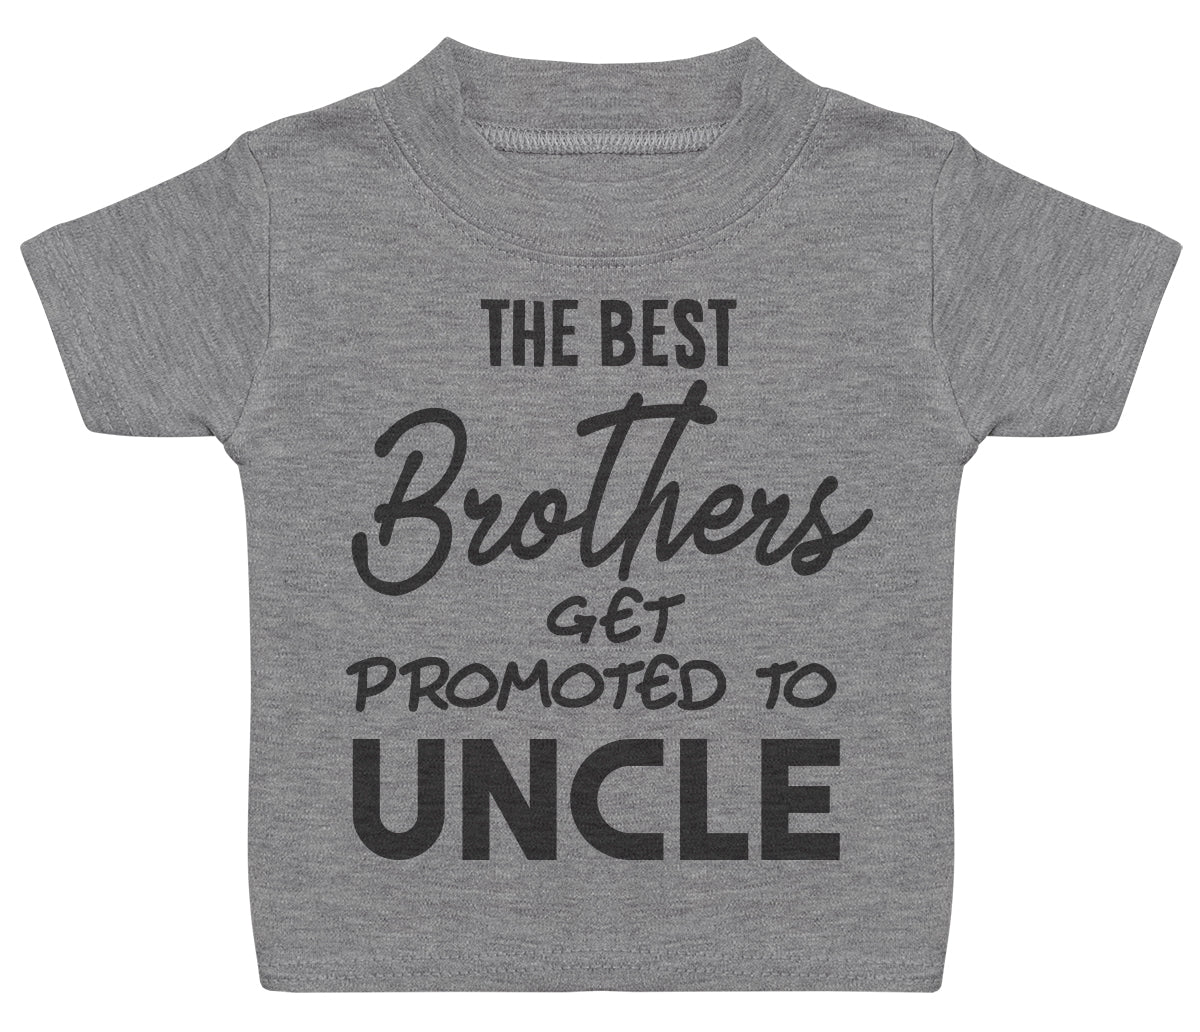 The Best Brothers Get Promoted To Uncle Baby T - Shirt